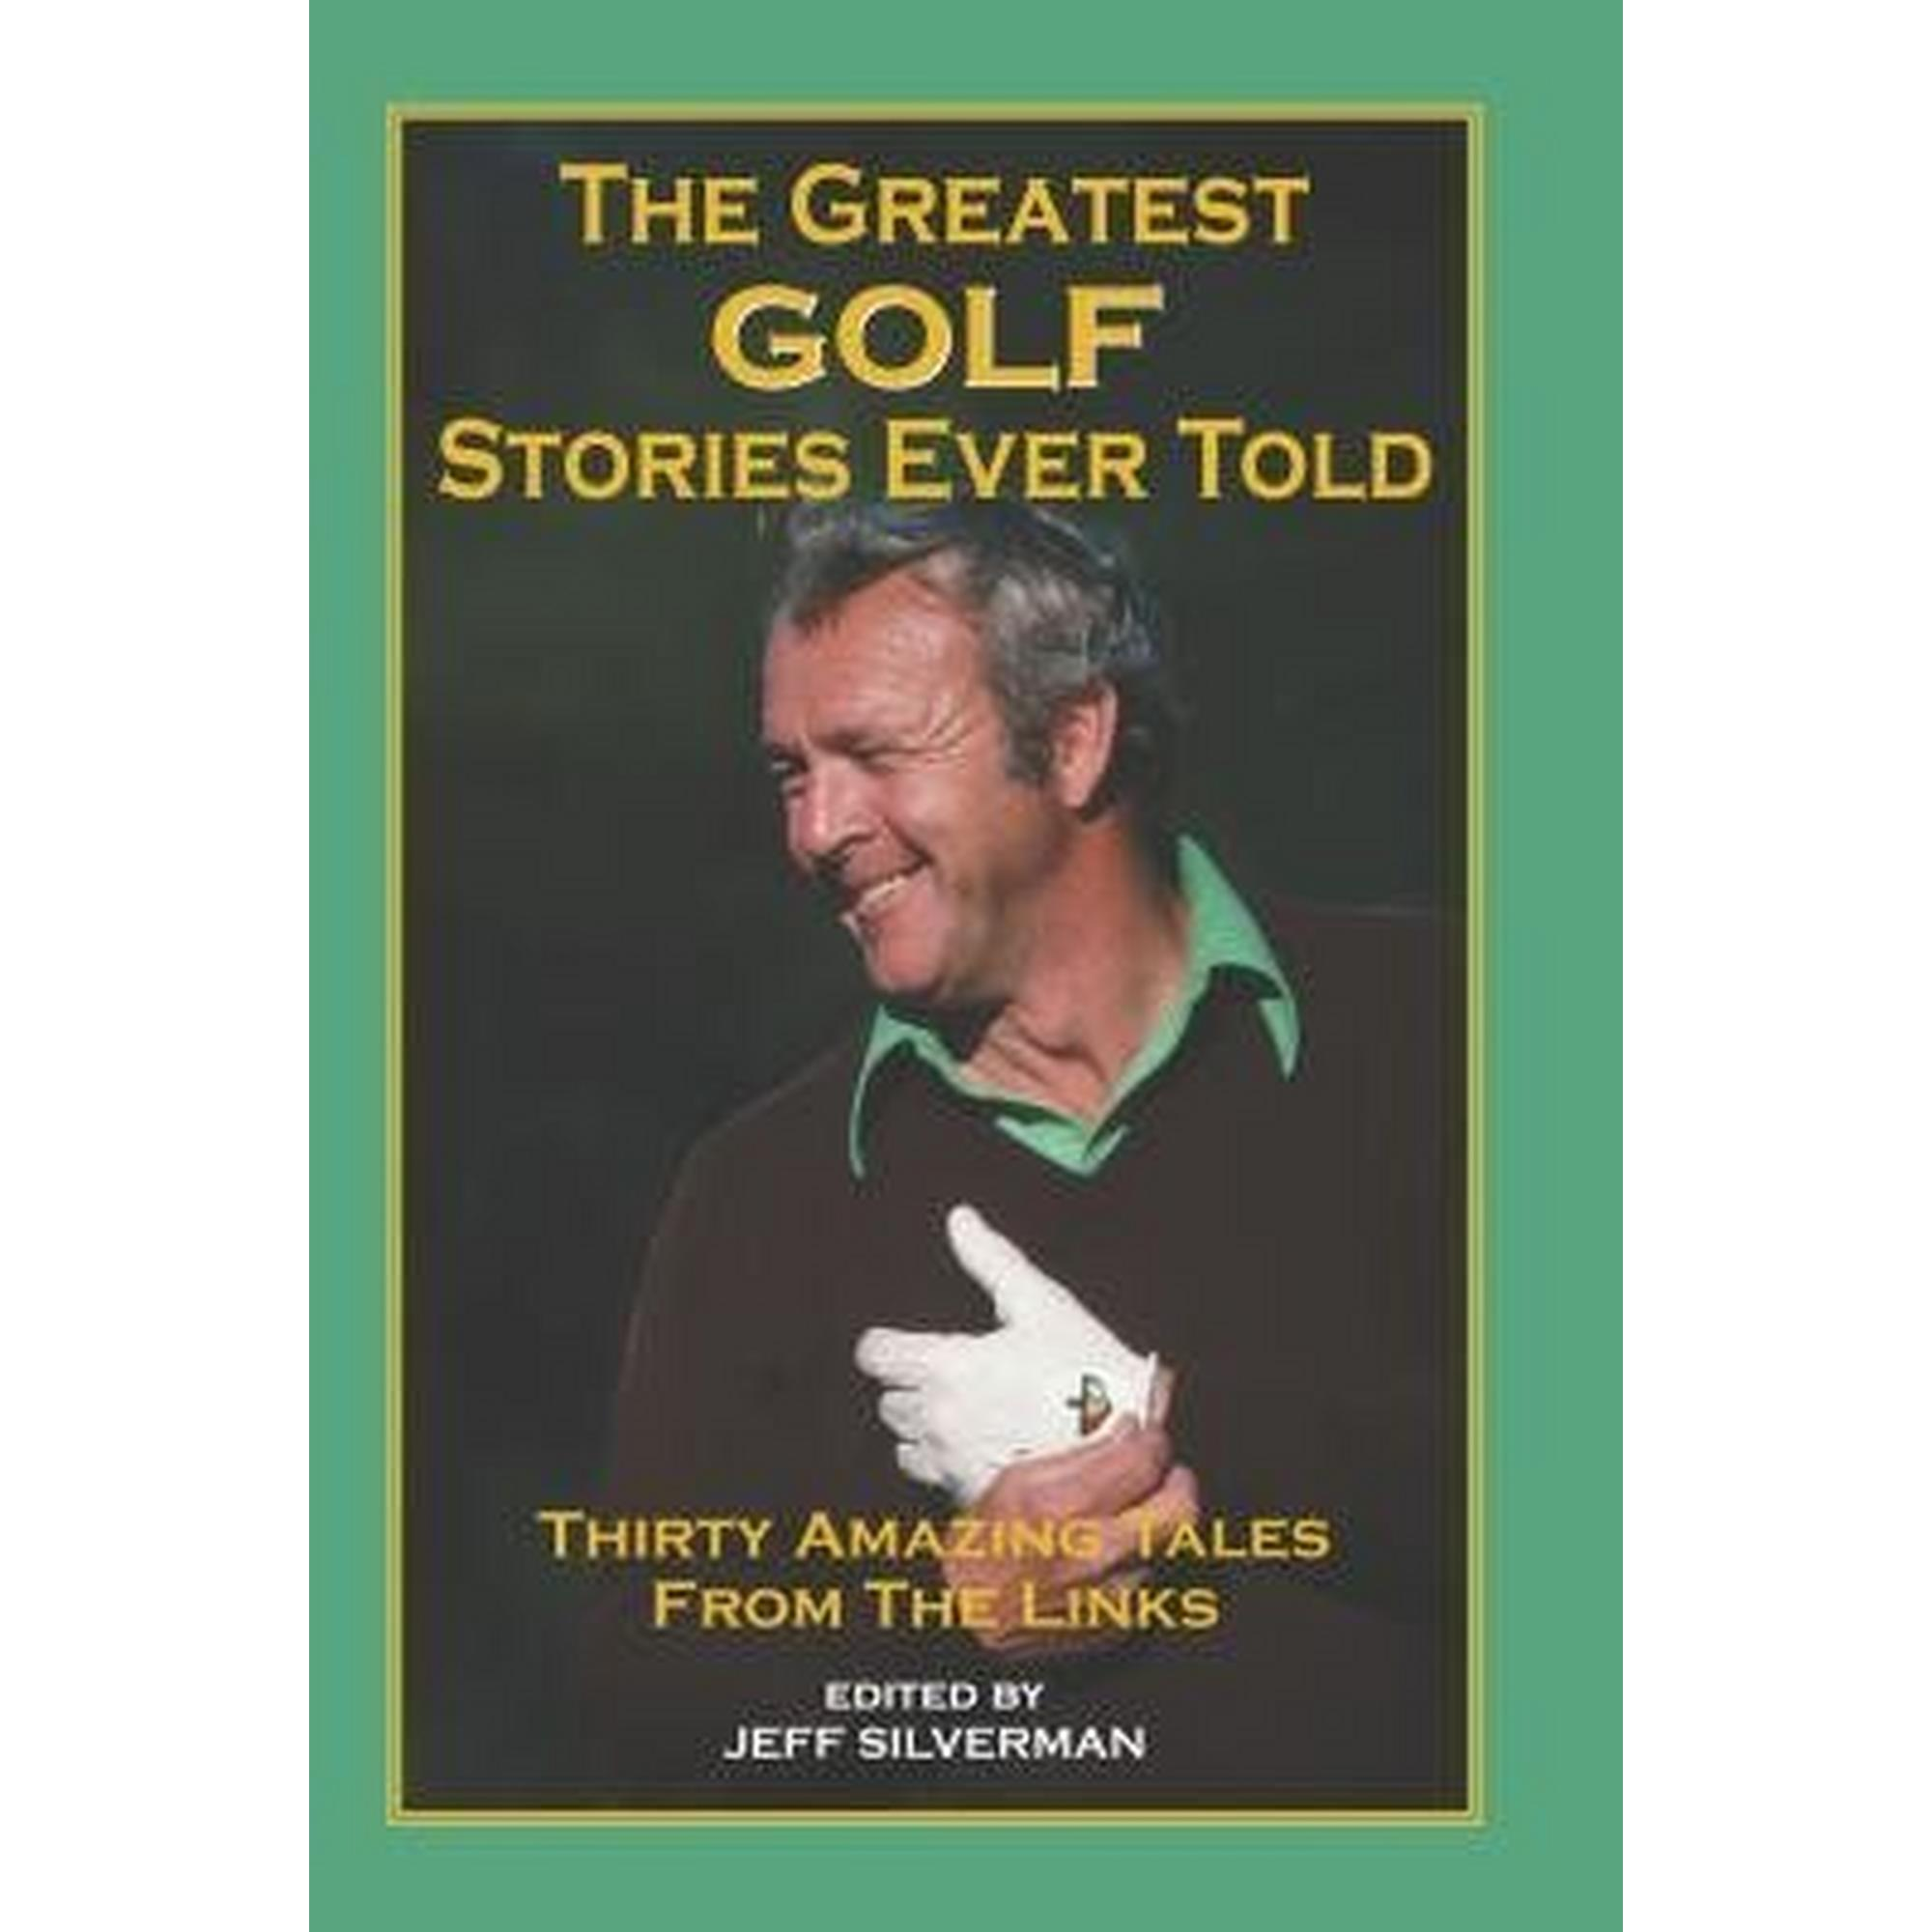 The Greatest Golf Stories Ever Told Golf Book